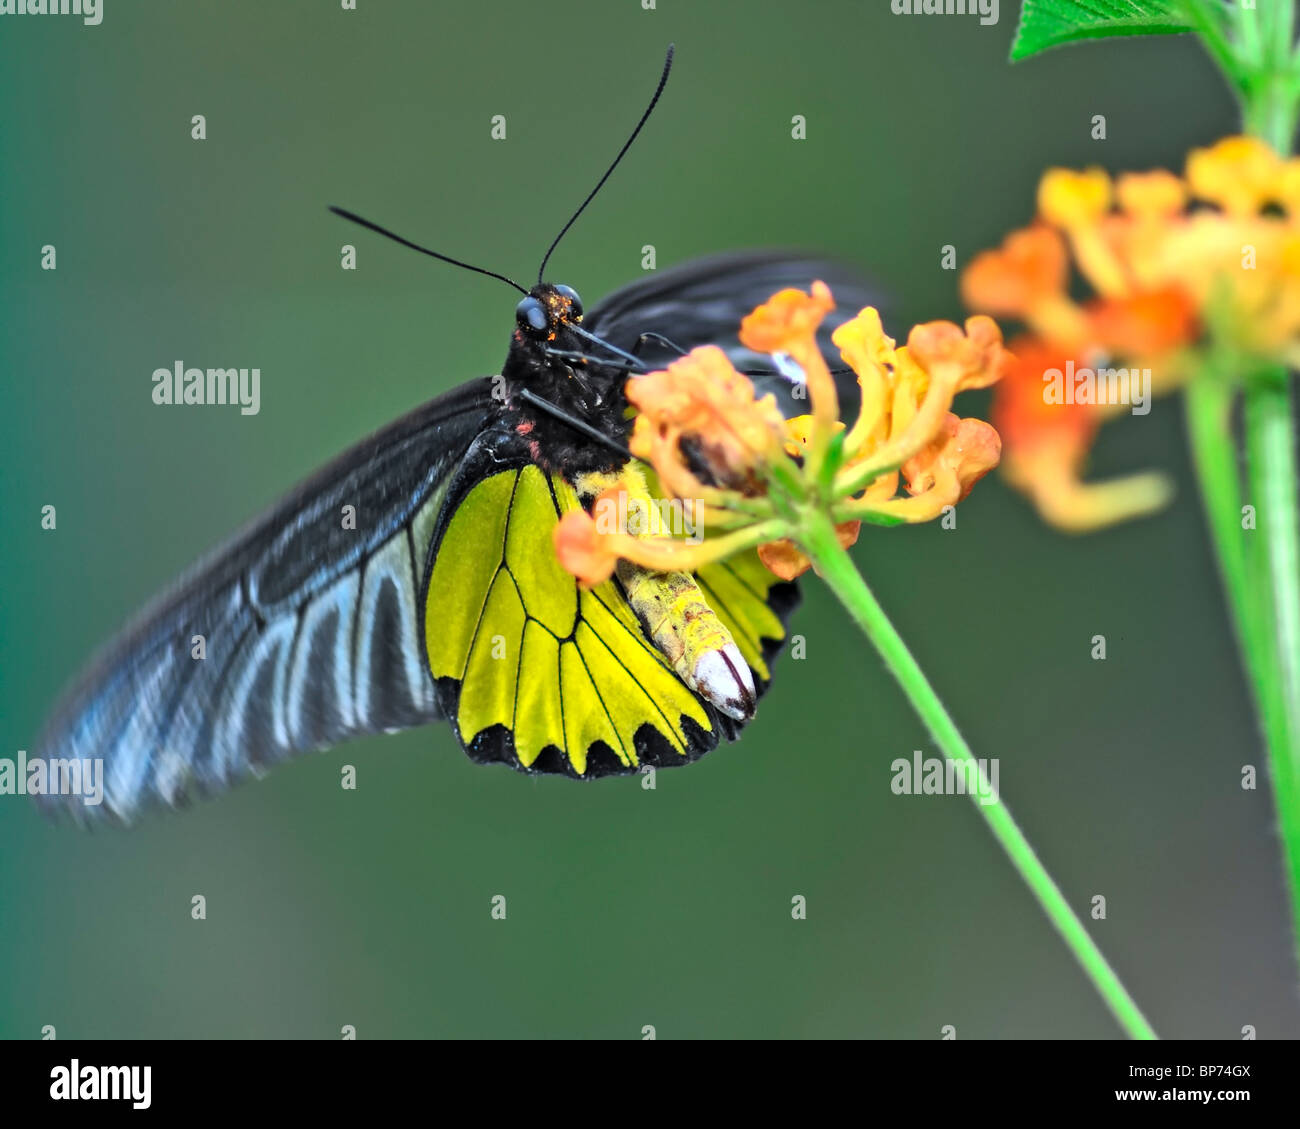 Common Birdwing Butterfly feeding on flowers - Troides Helena - Stock Image